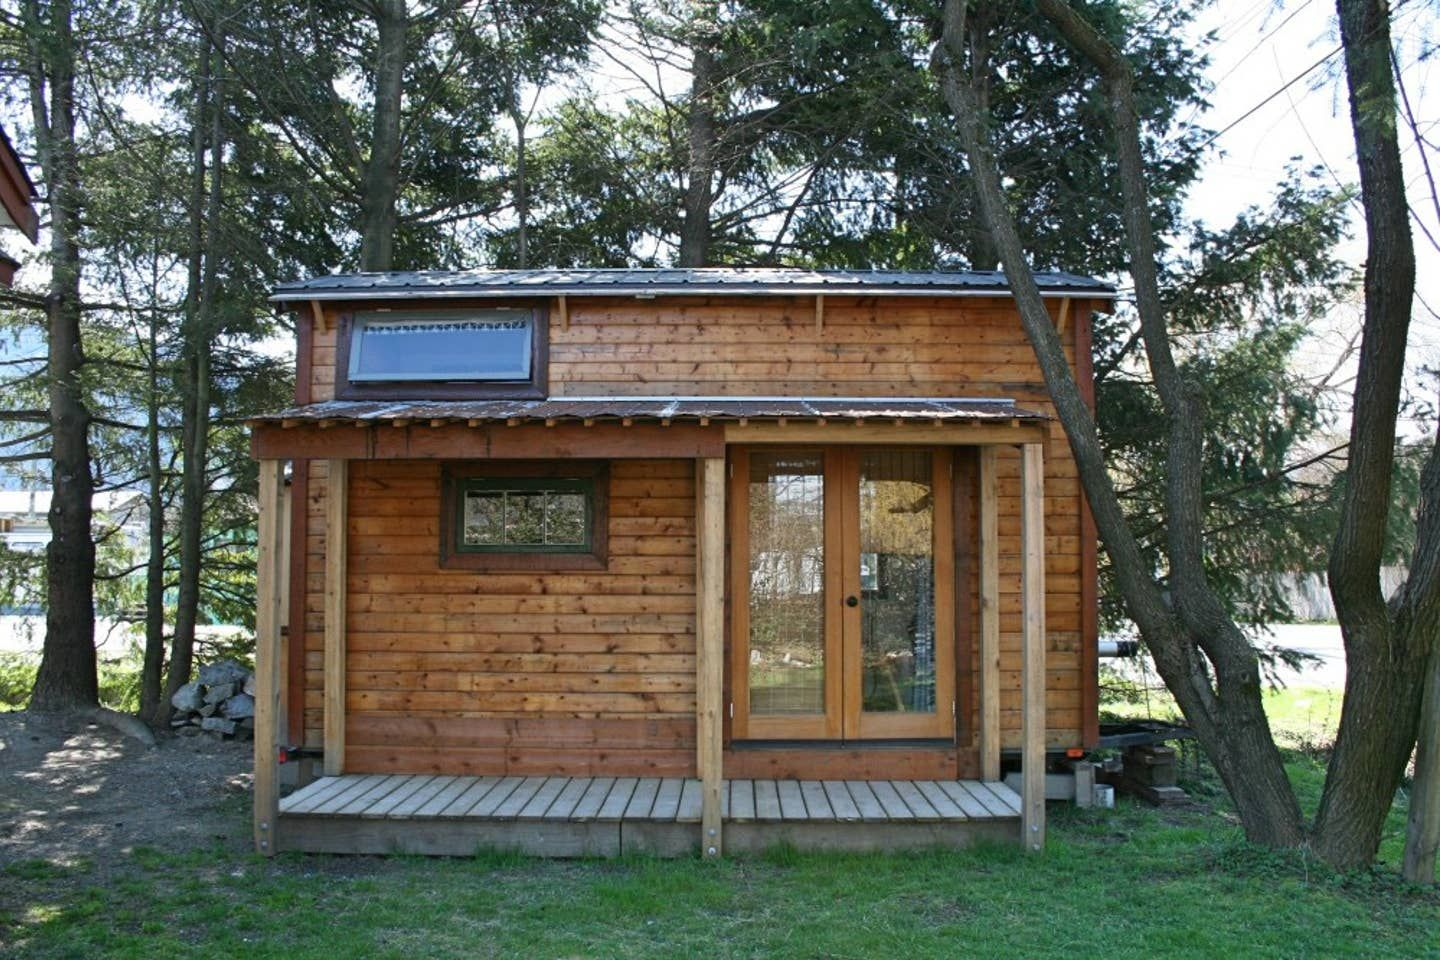 50 Tiny Houses You Can Rent On Airbnb In 2020 In 2020